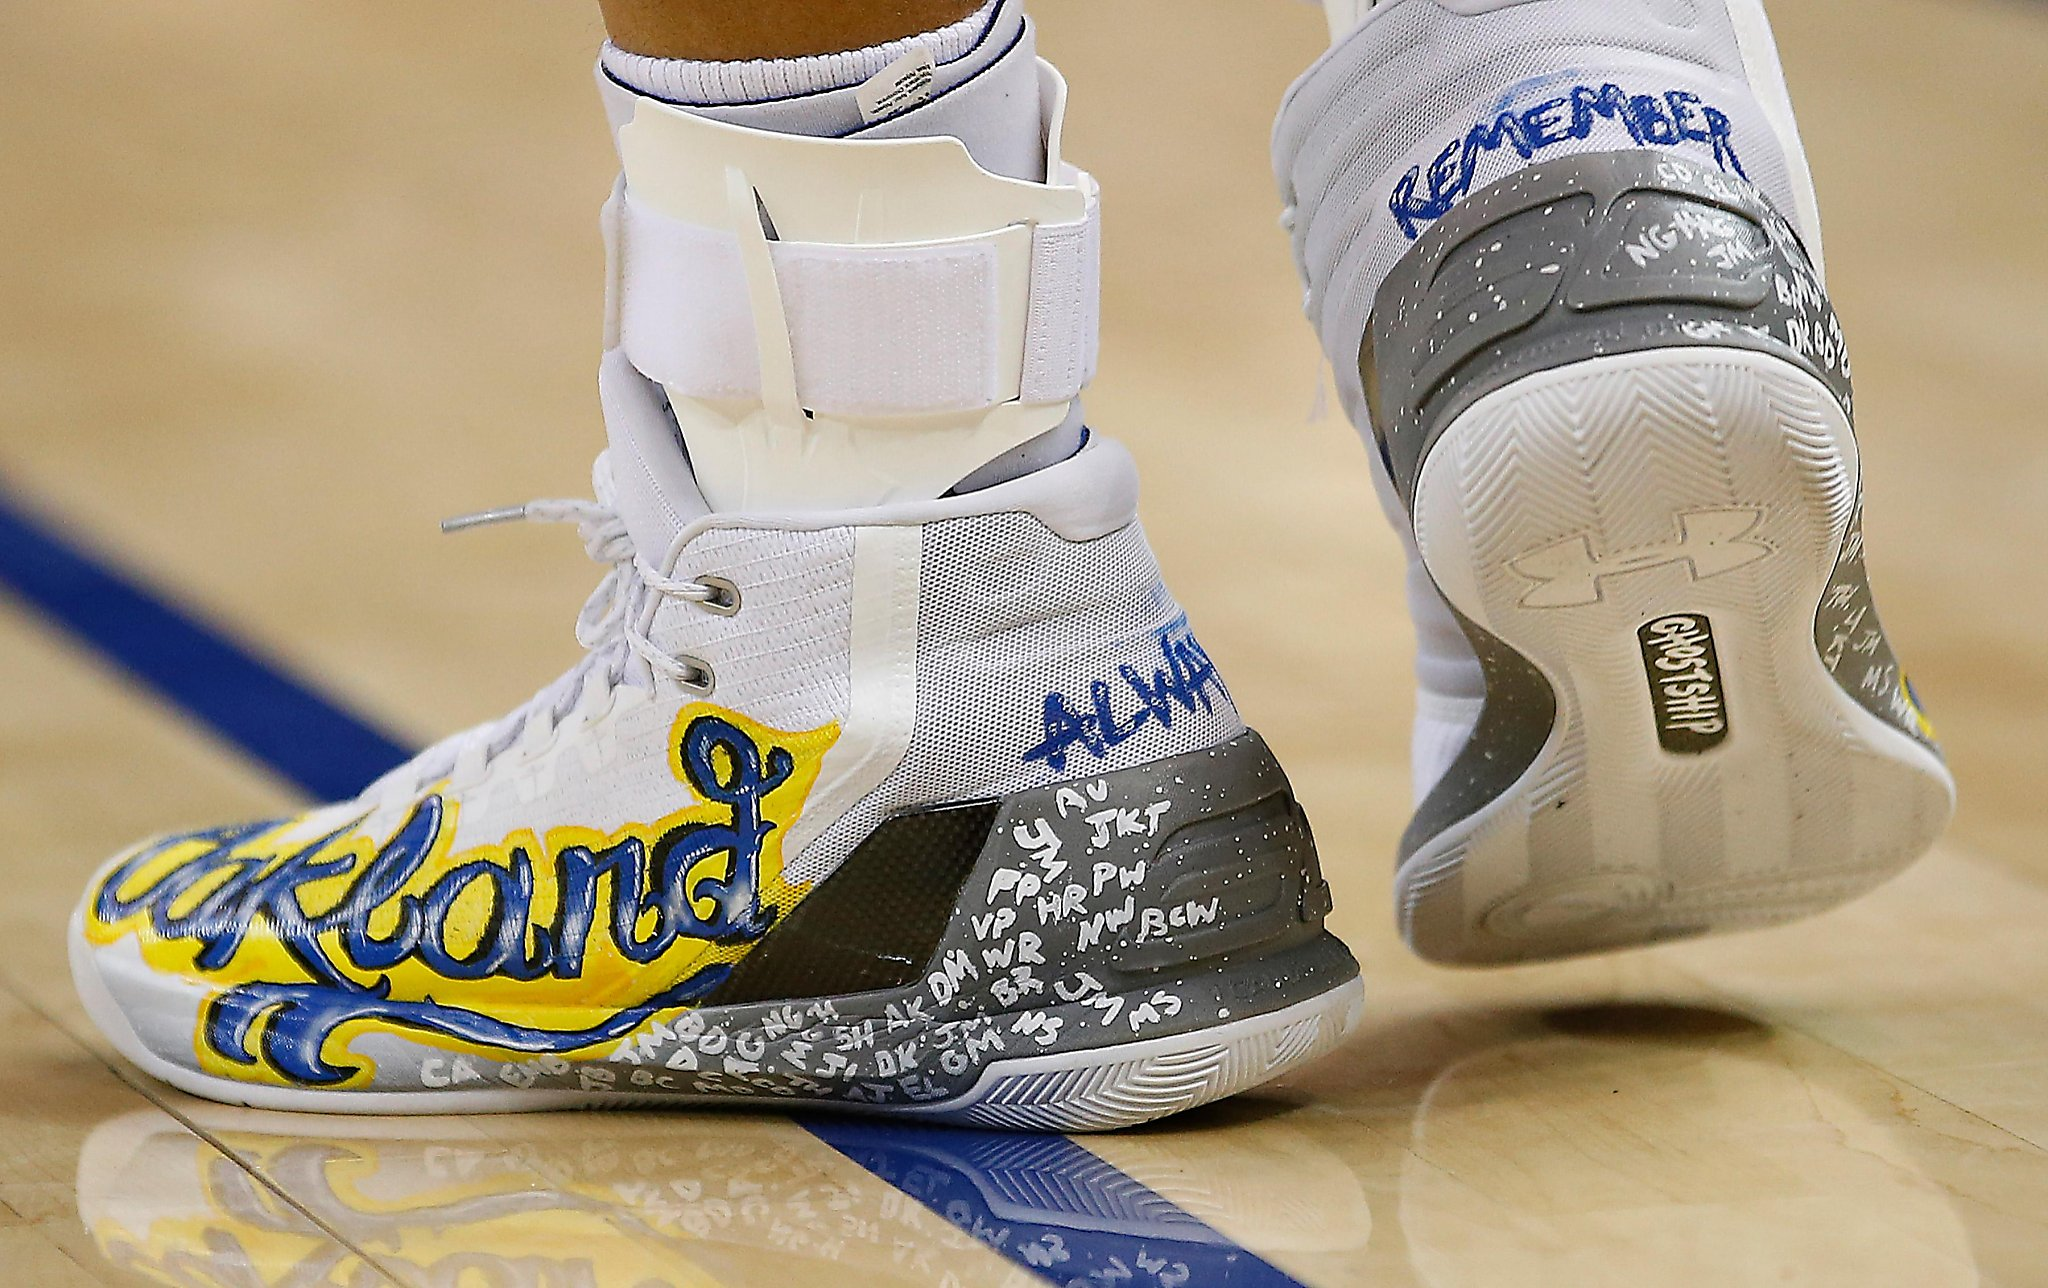 7a7a16c68fbf Curry to auction shoes to benefit Oakland Fire Relief - San Antonio ...